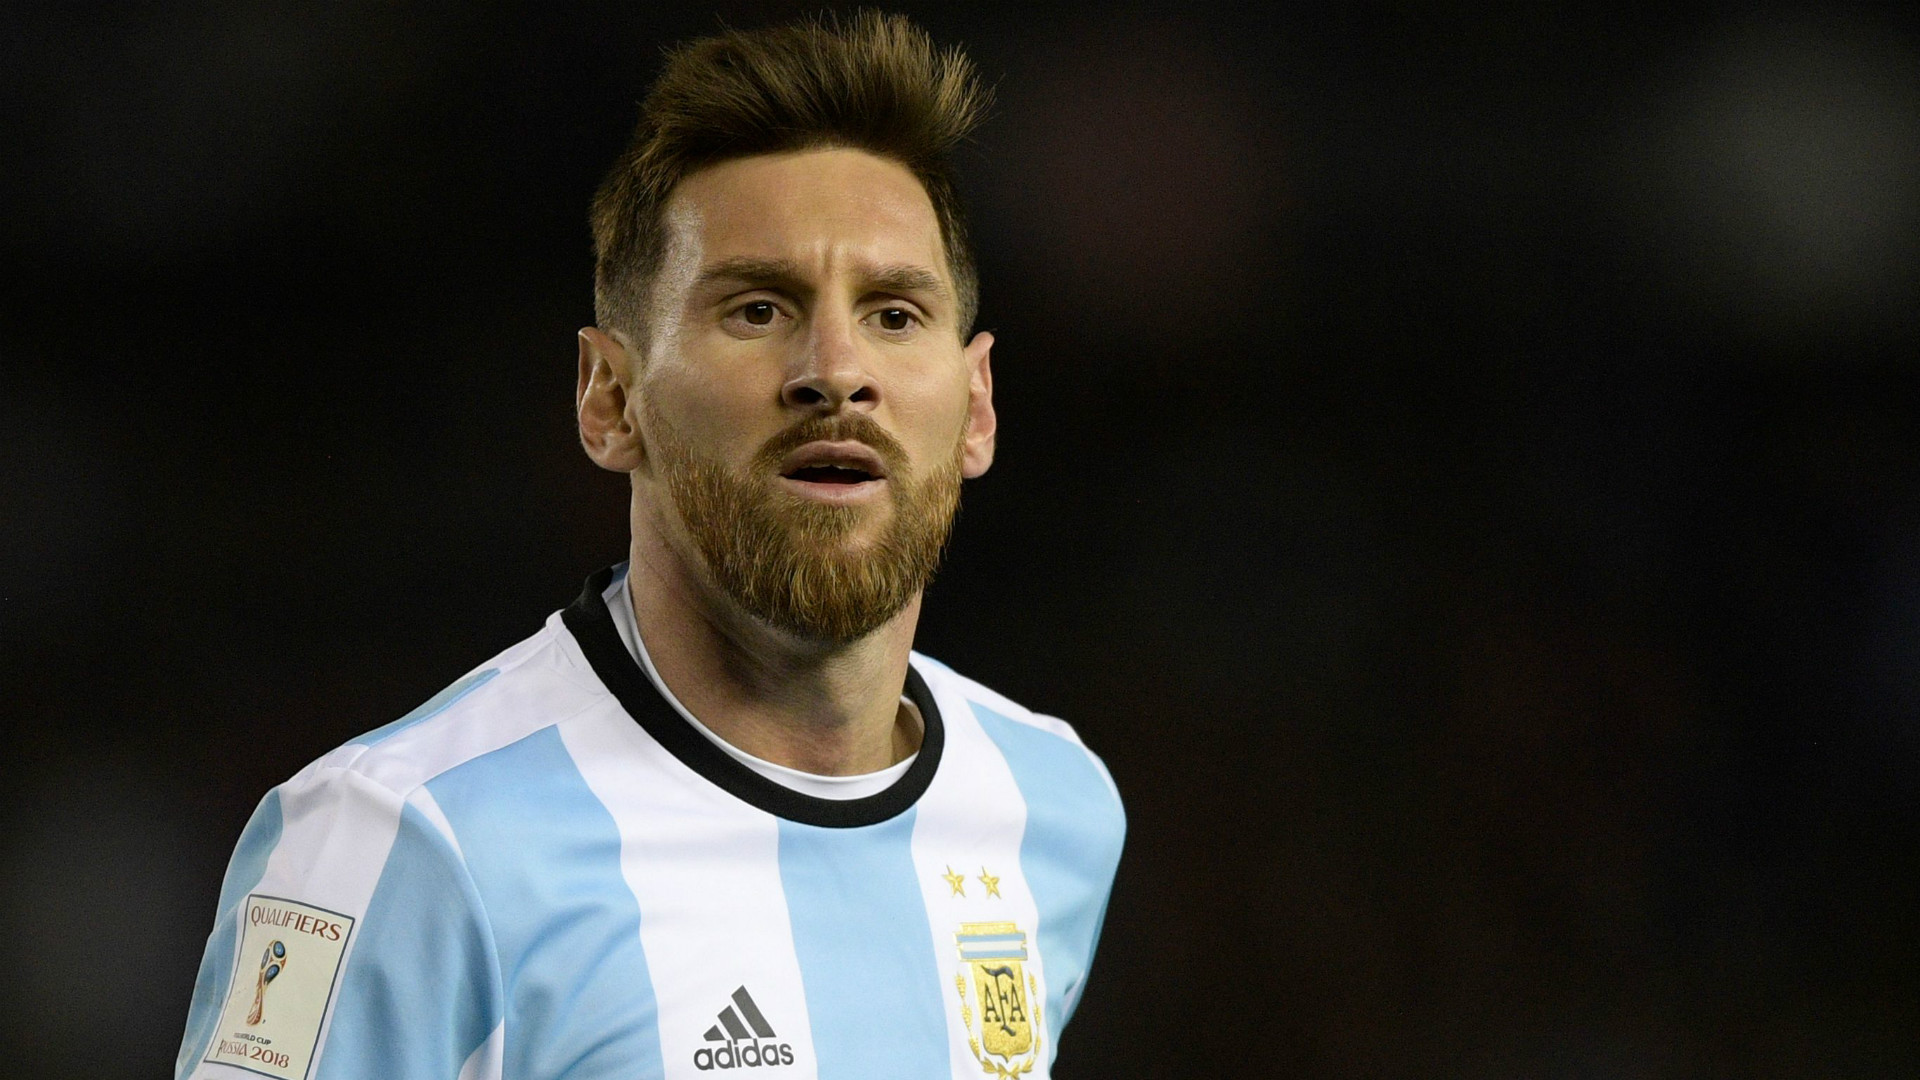 Messi, Argentina on verge of World Cup catastrophe